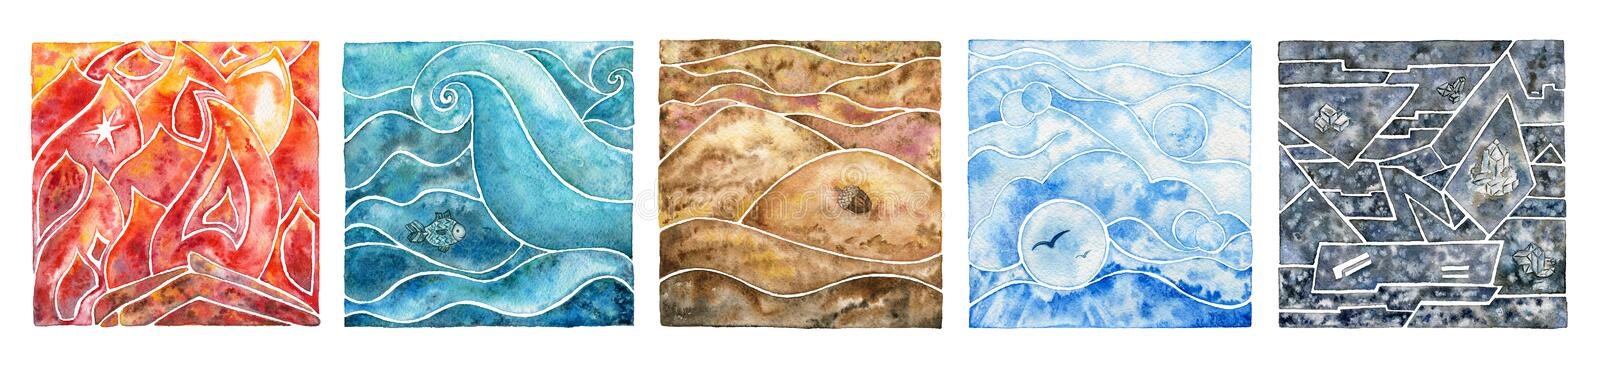 Five elements: fire, water, air, earth and metal. Oriental set. Five natural elements: fire, water, air, earth and metal. Watercolor illustration set stock illustration